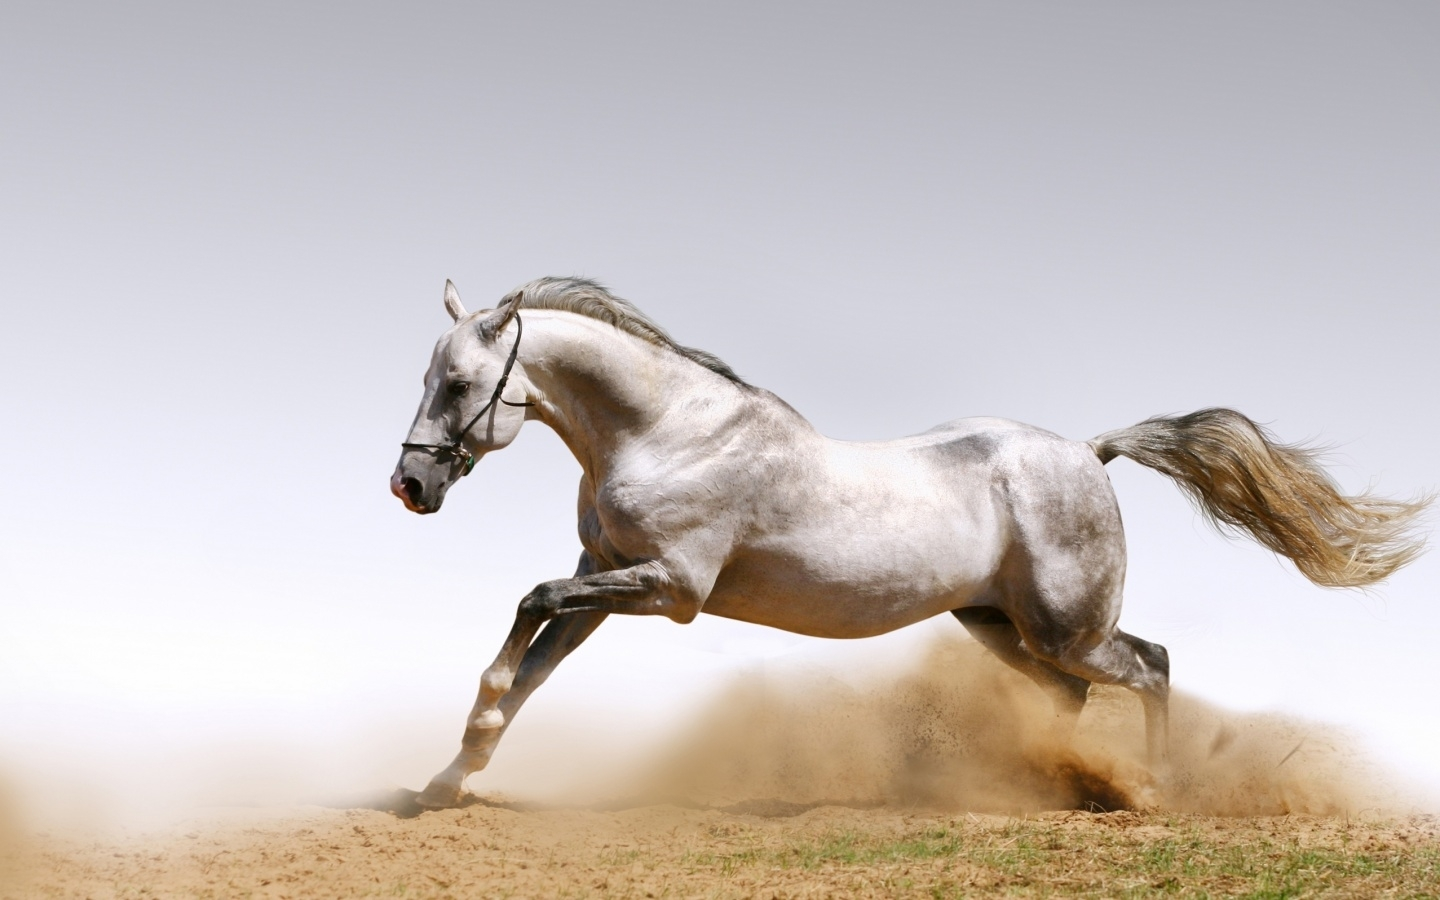 47129 download wallpaper Animals, Horses screensavers and pictures for free